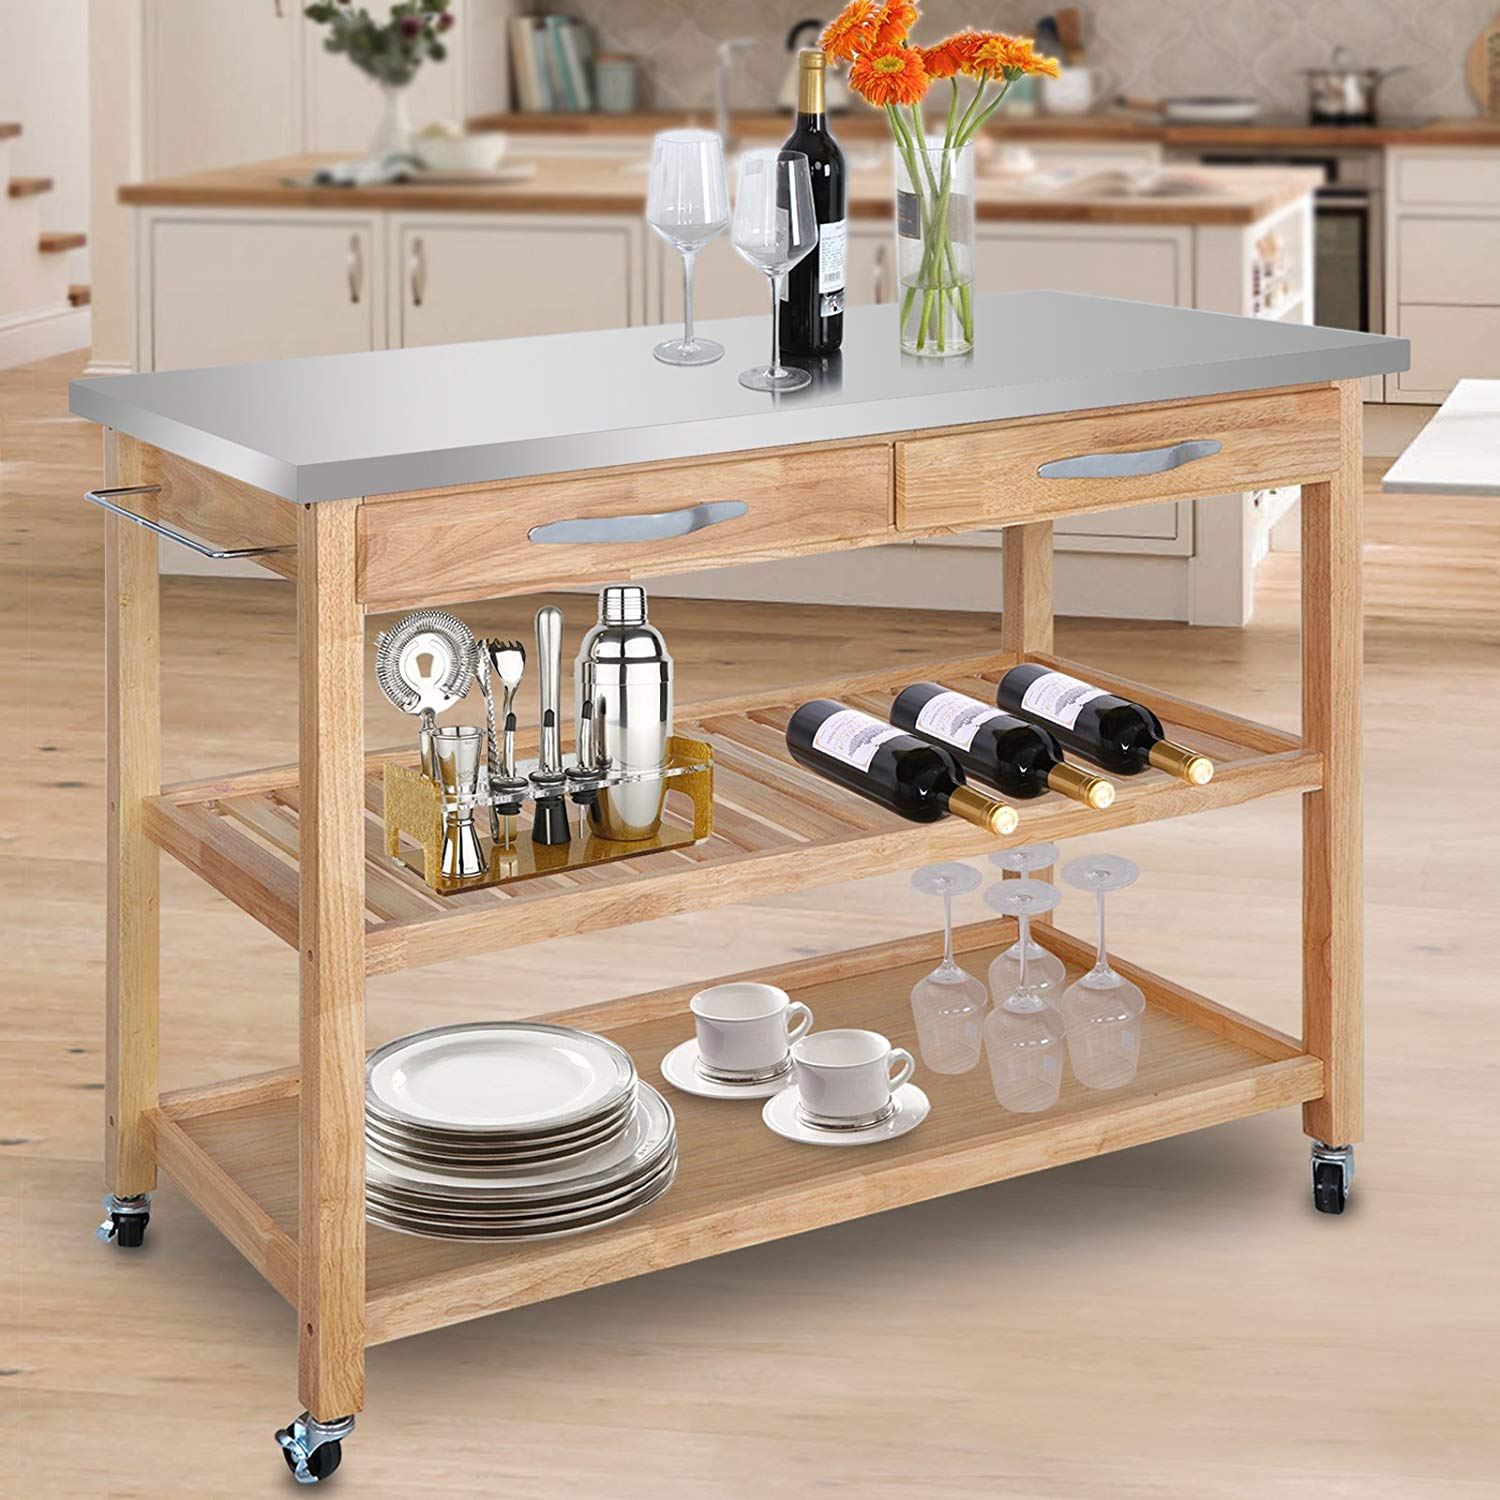 UBesGoo Rolling Kitchen Island Utility Kitchen Serving Cart w/Stainless Steel Countertop, Spacious Drawers Lockable Wheels, Natural